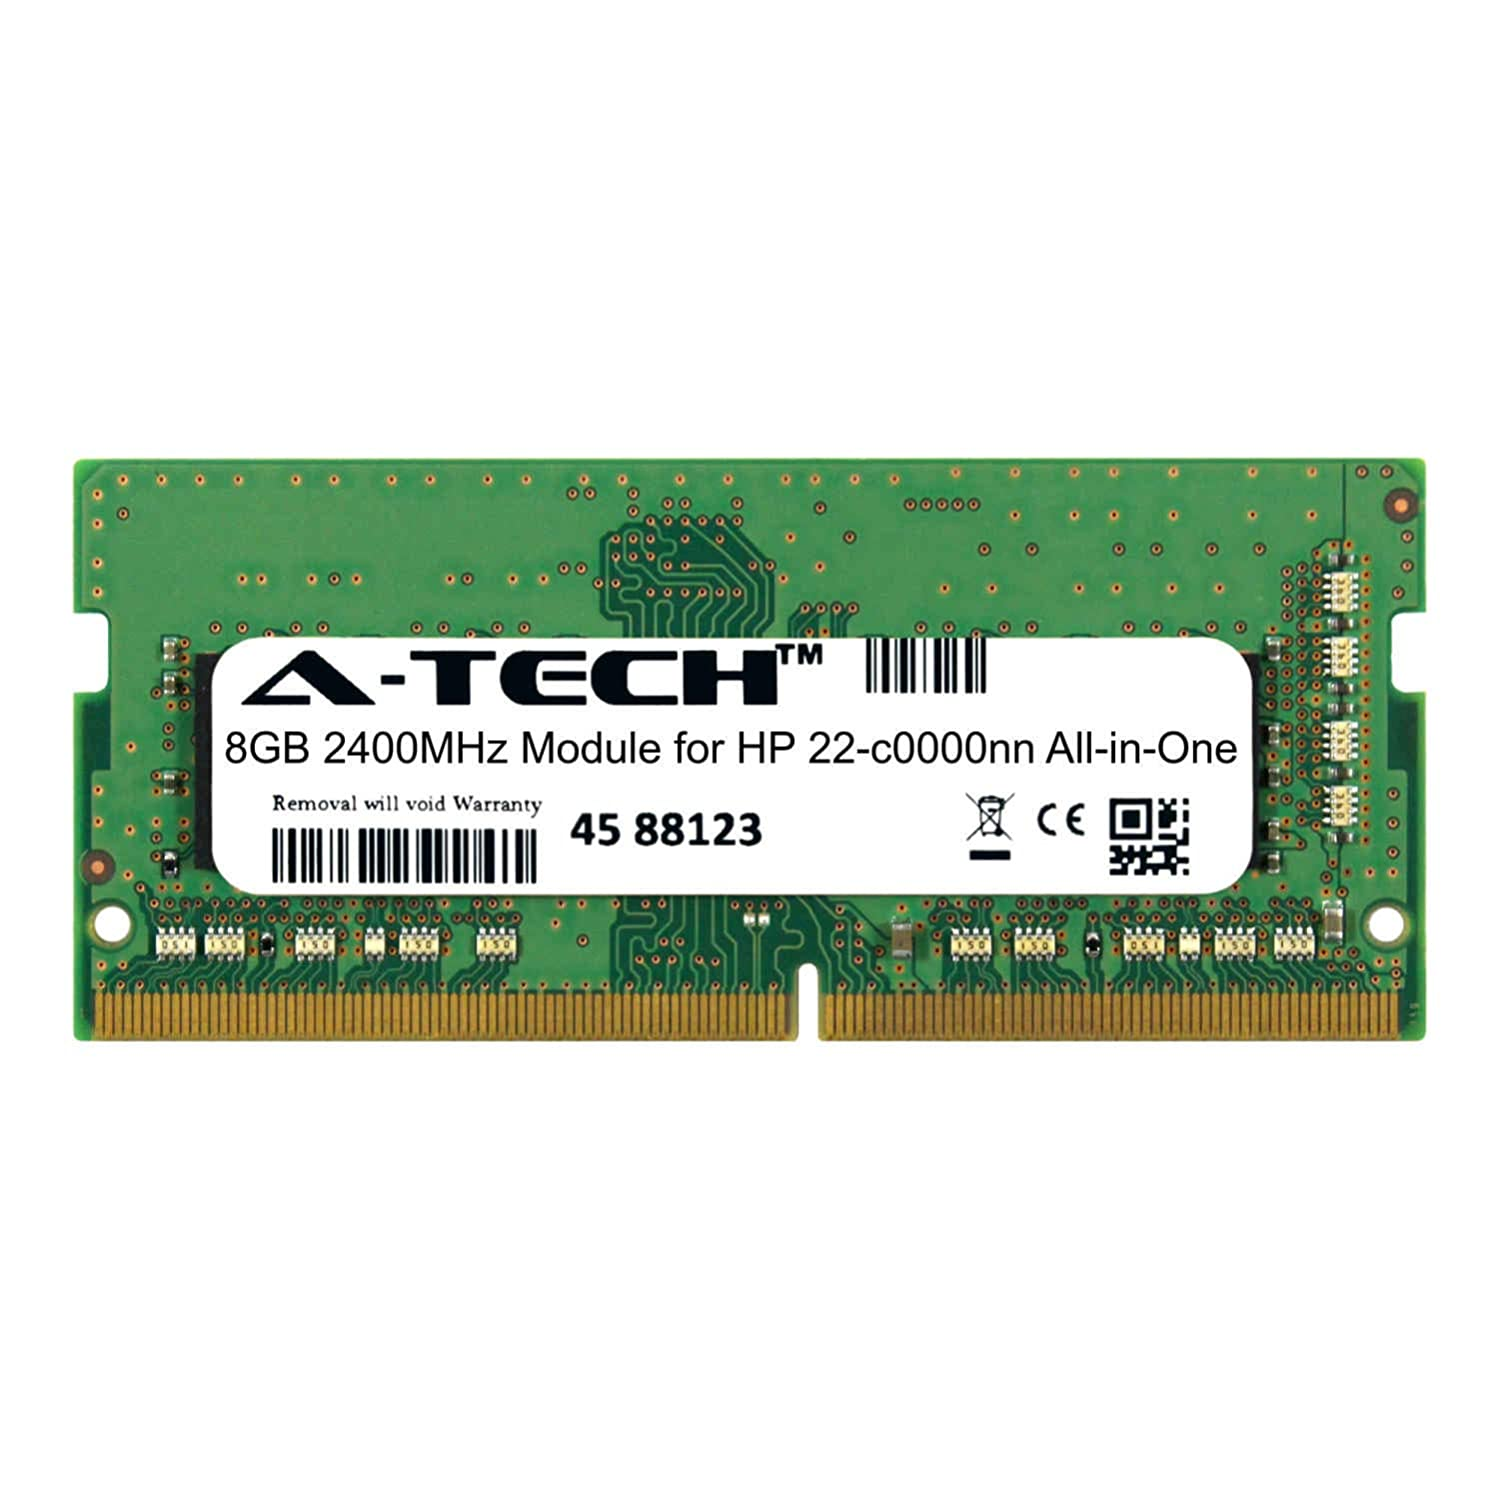 A-Tech 8GB Module for HP 22-c0000nn All-in-One (AIO) Compatible DDR4 2400Mhz Memory Ram (ATMS276602A25827X1)